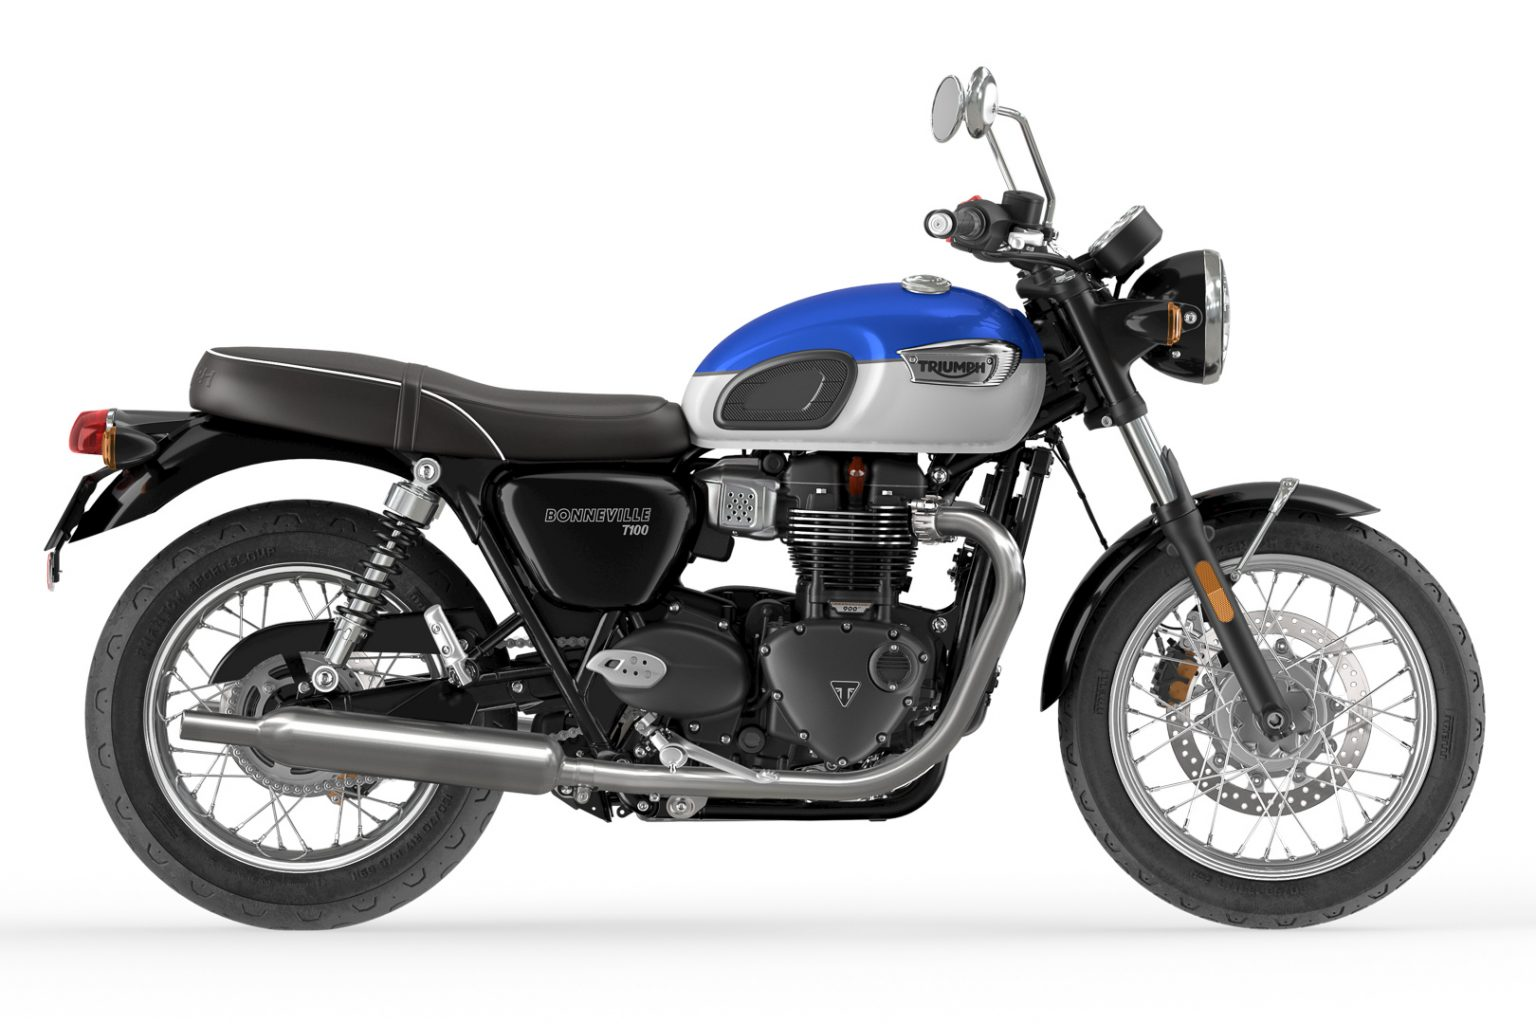 2021 Triumph Bonneville T100 First Look (9 Fast Facts)